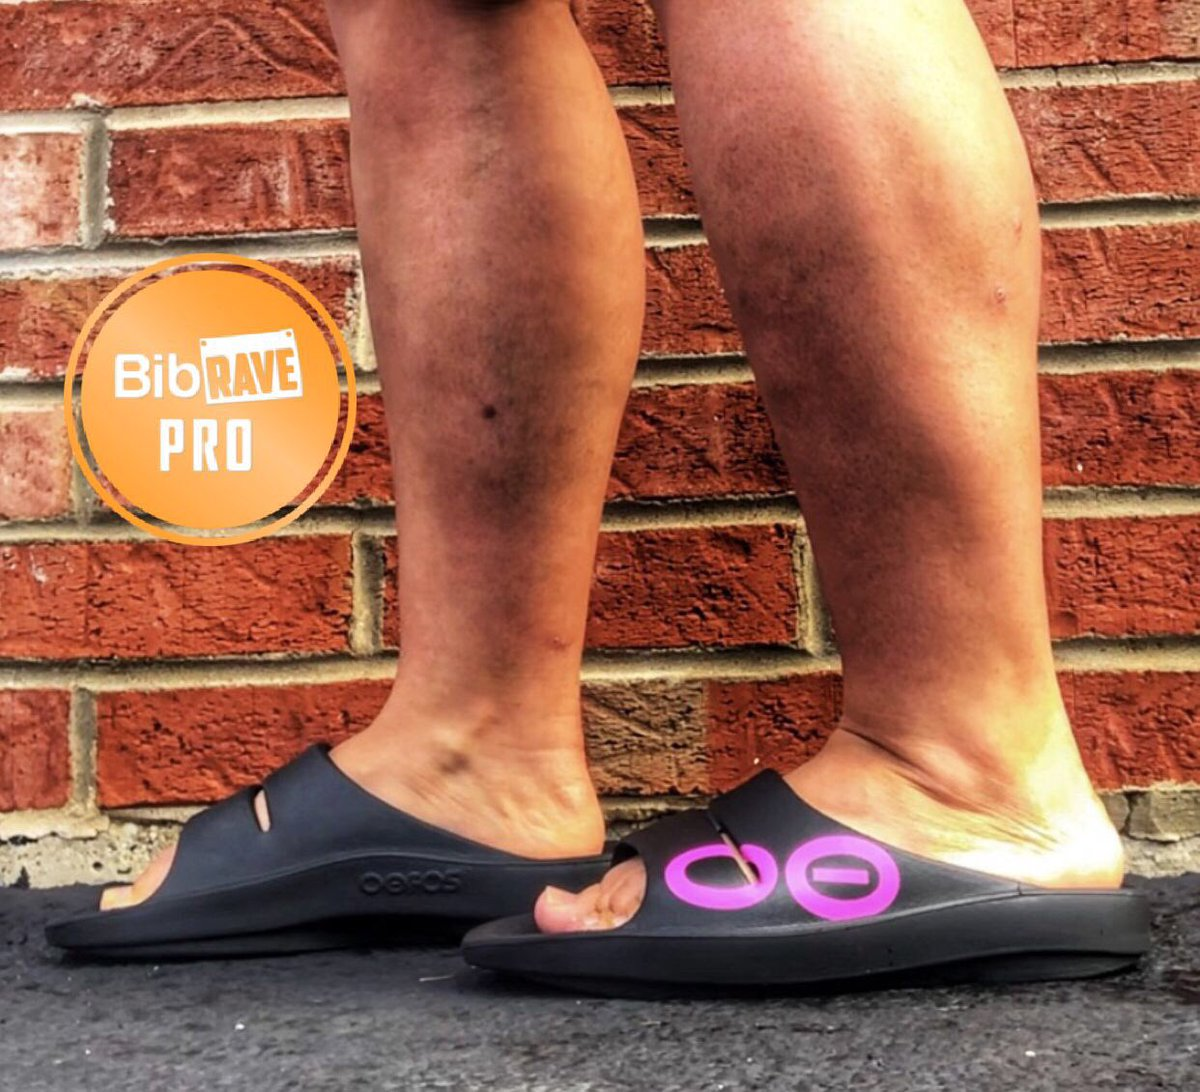 Blog is up about my @oofos sandals. #oofosbr #bibchat #oofos #feeltheoo #bibravepro  https:// brandytherunner.wordpress.com/2019/09/16/fee ling-theoo-in-my-oofos-slides/  … <br>http://pic.twitter.com/KX6V4lPdyO